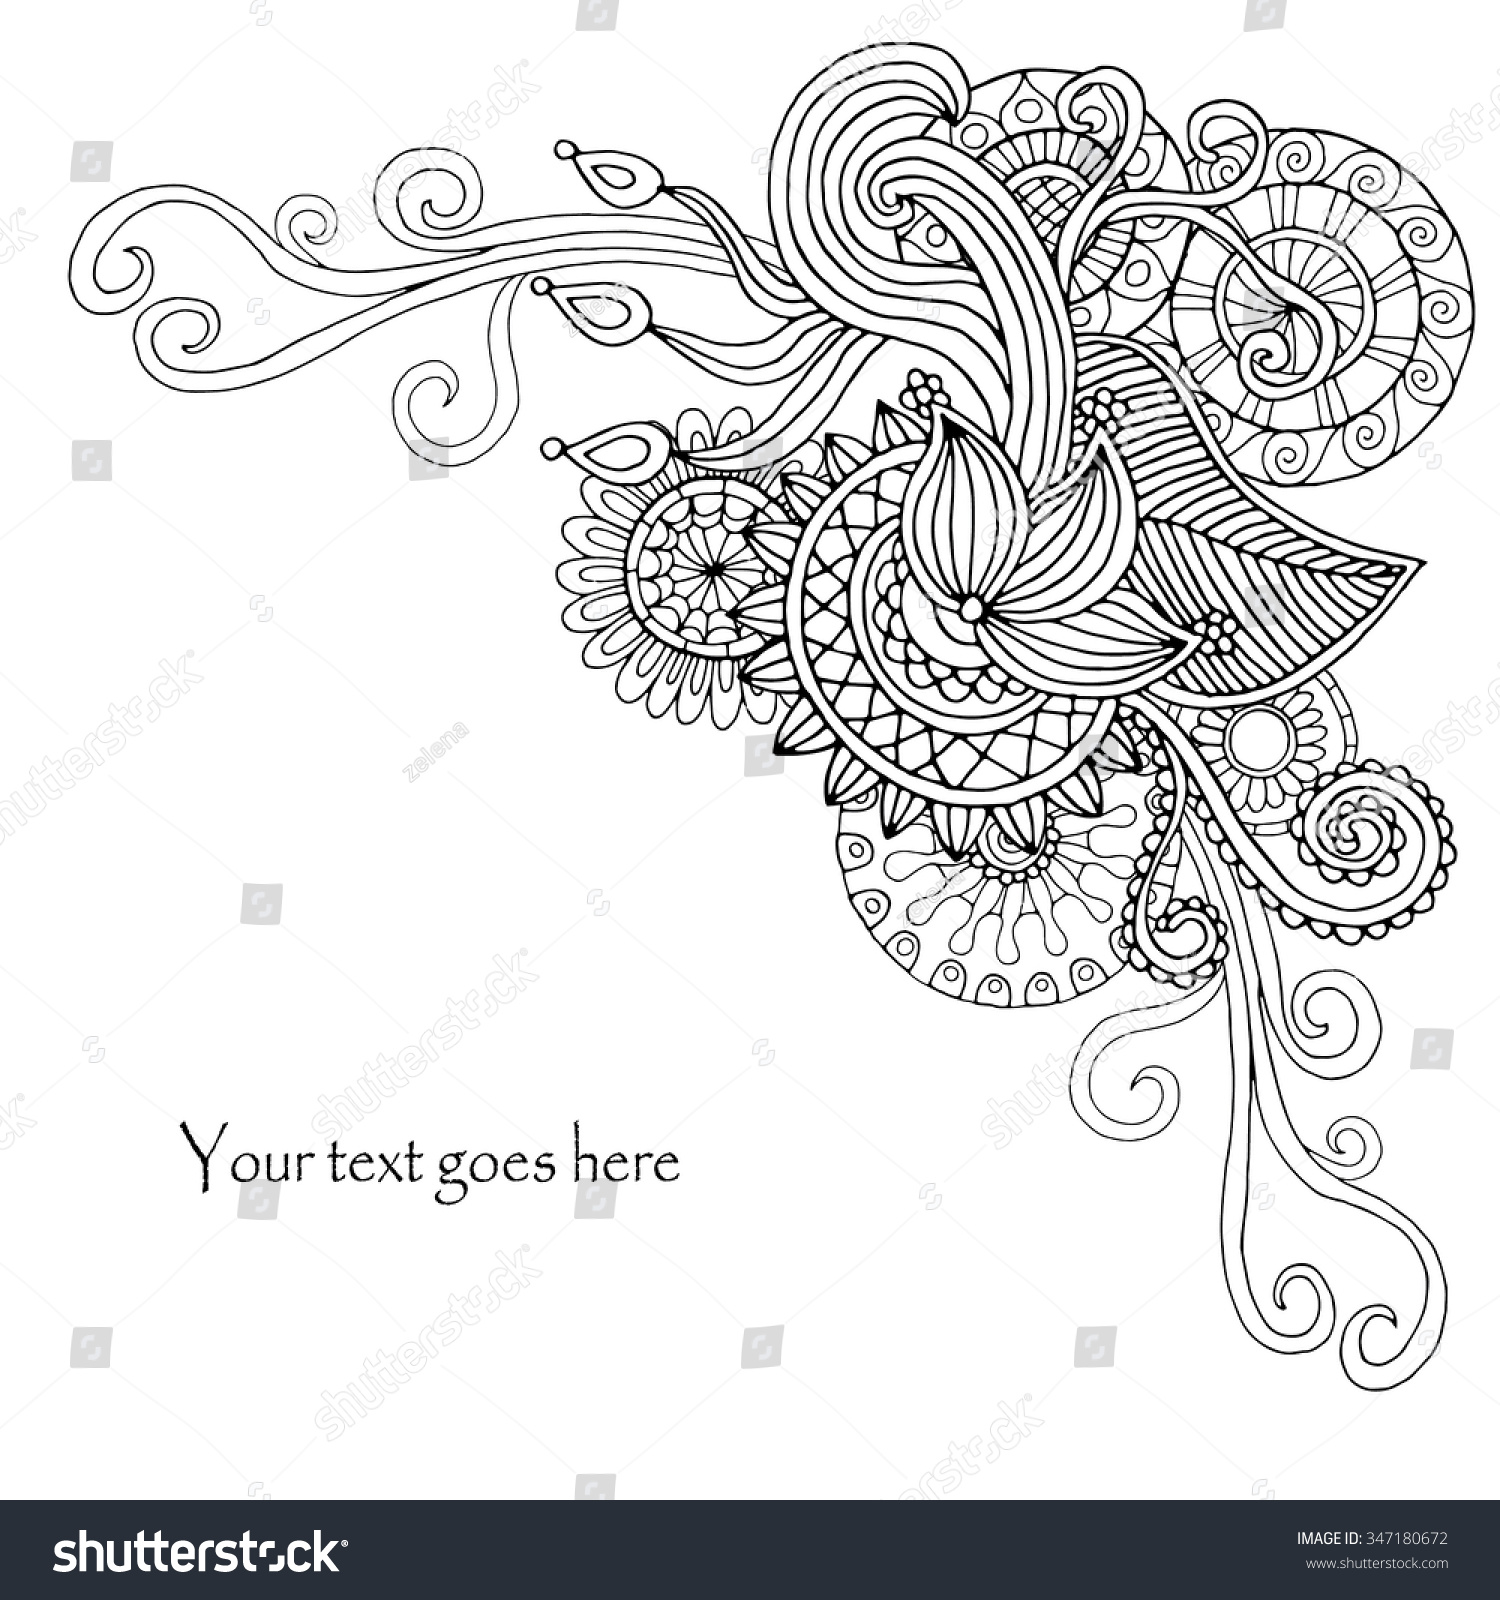 Template poster with doodle flowers and paisley for your business ...